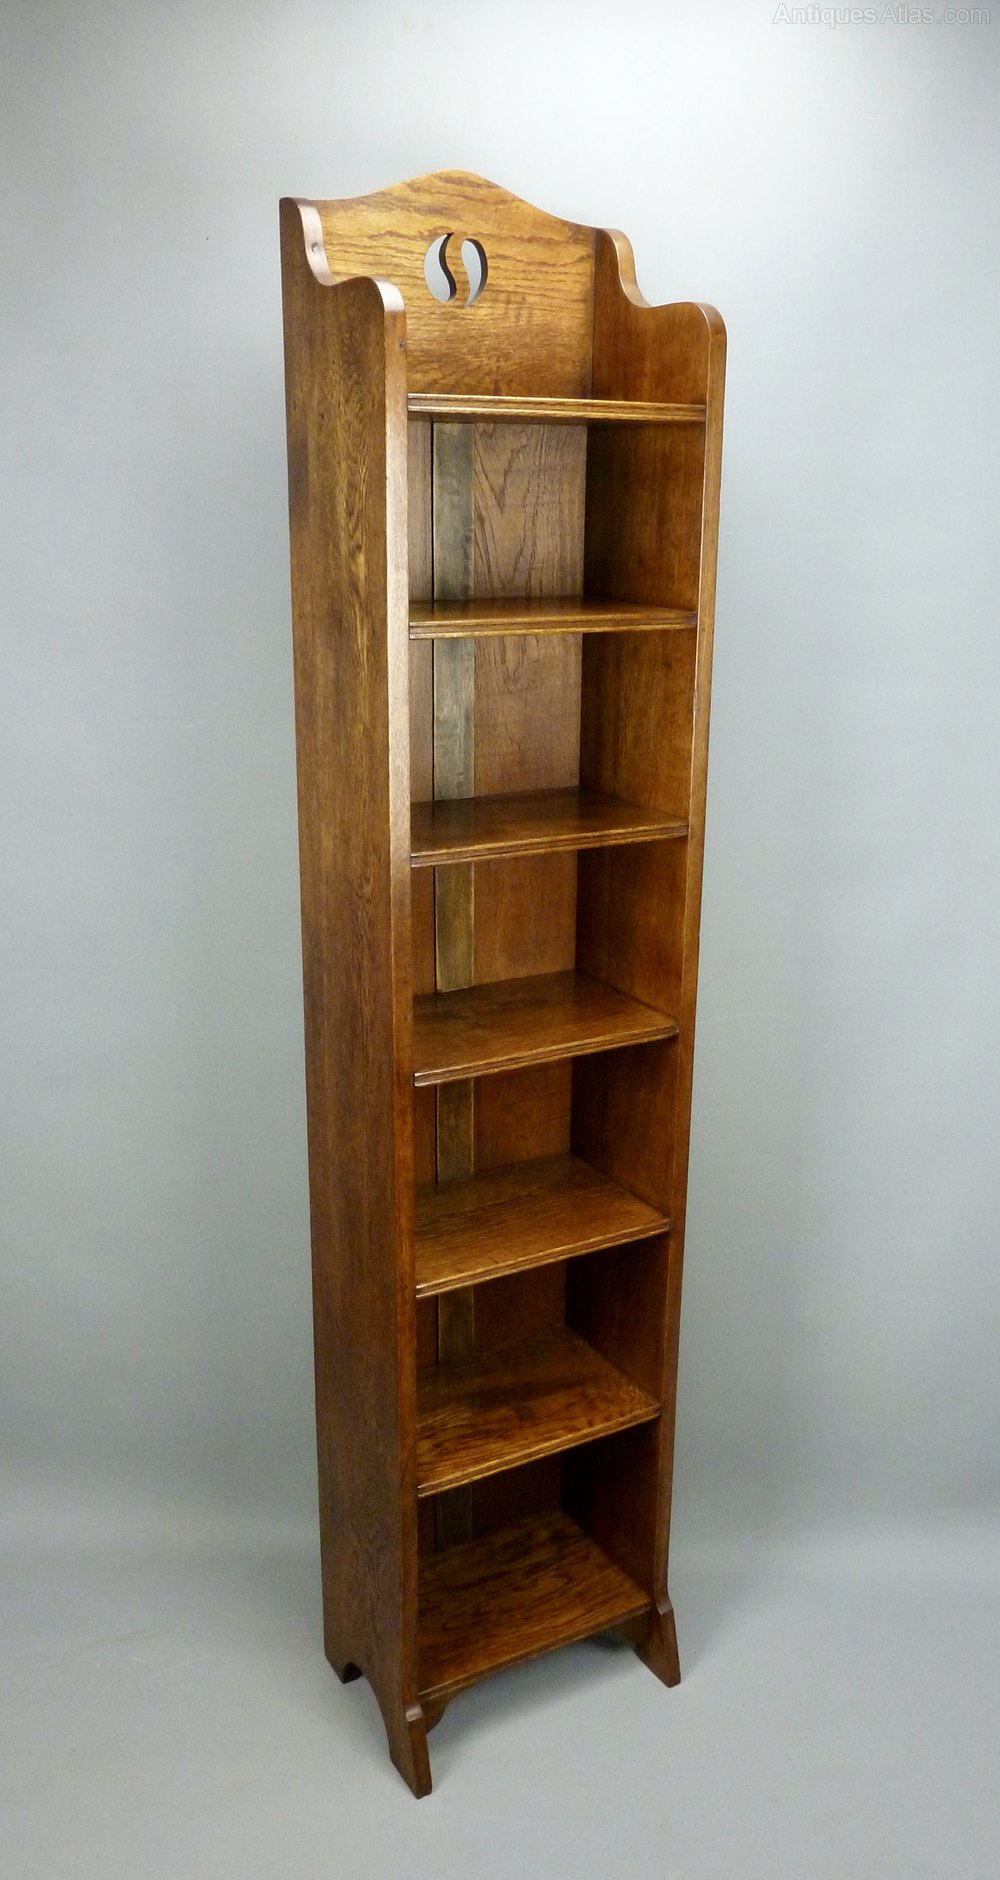 Very Tall Arts Amp Crafts Narrow Oak Bookcase C1910 Antiques Atlas